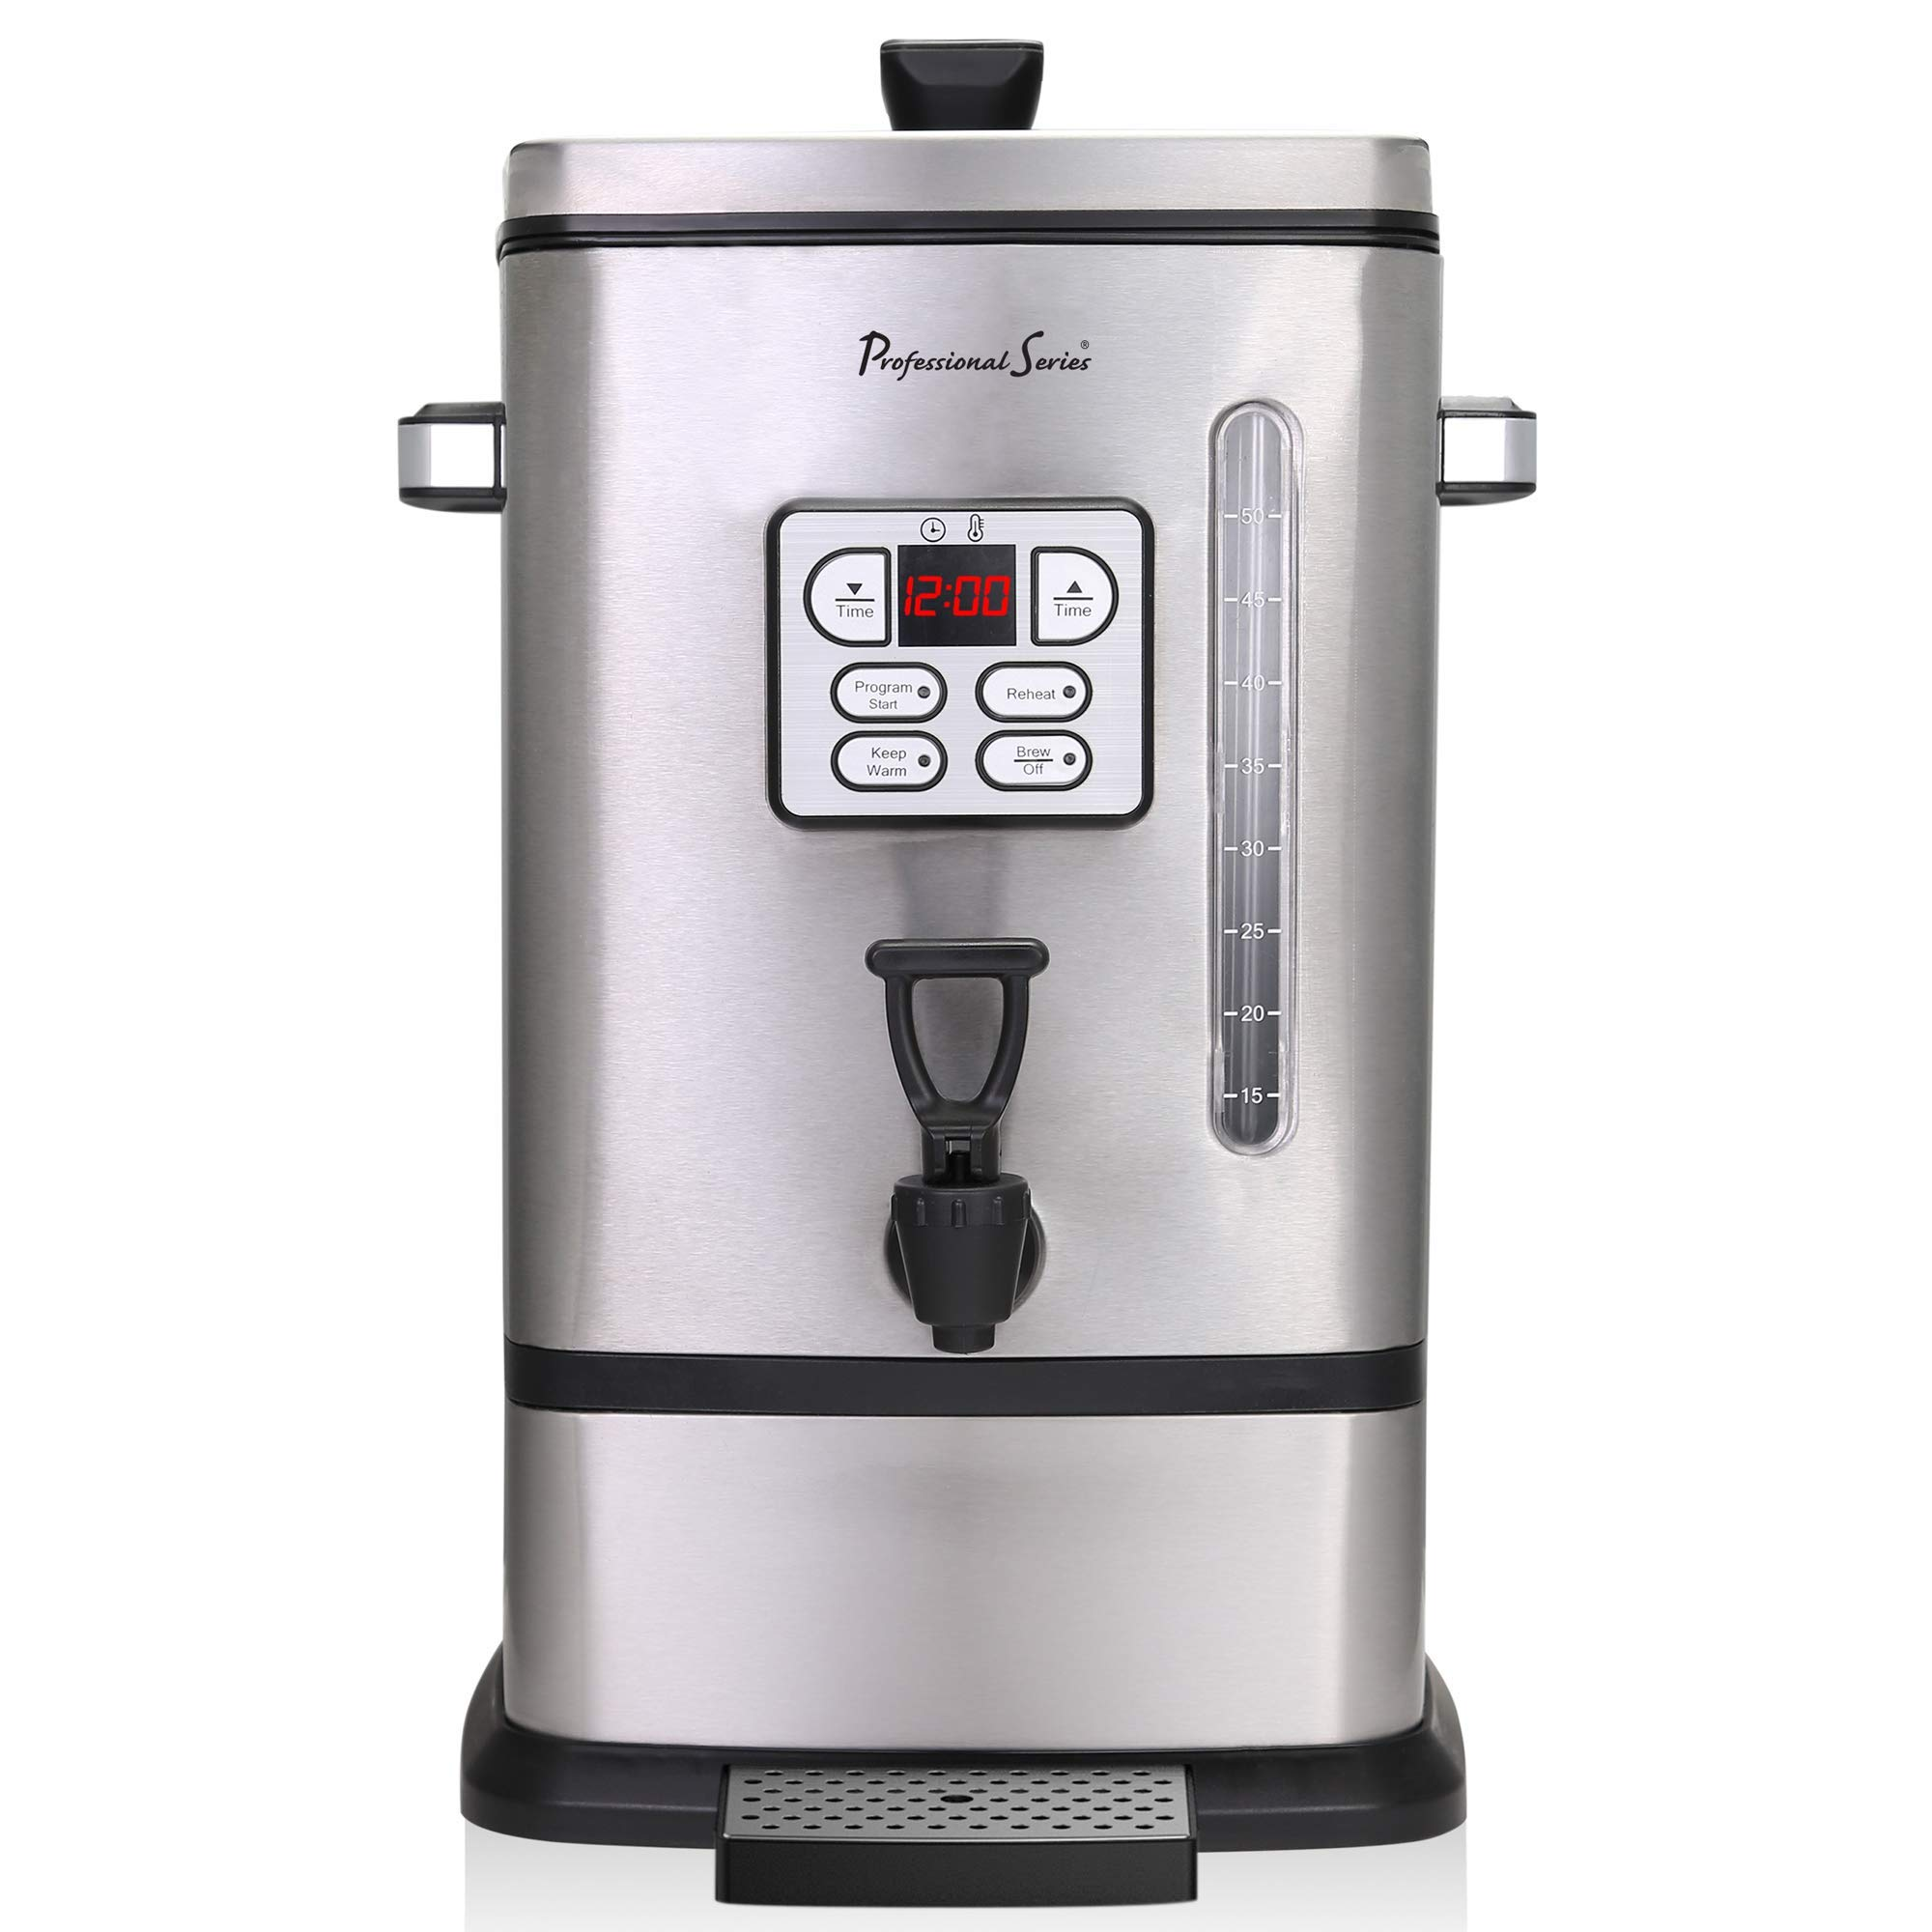 Continental Electric PS-SQ018 Professional Coffee Urn, 50 Cup, Stainless Steel (Renewed)